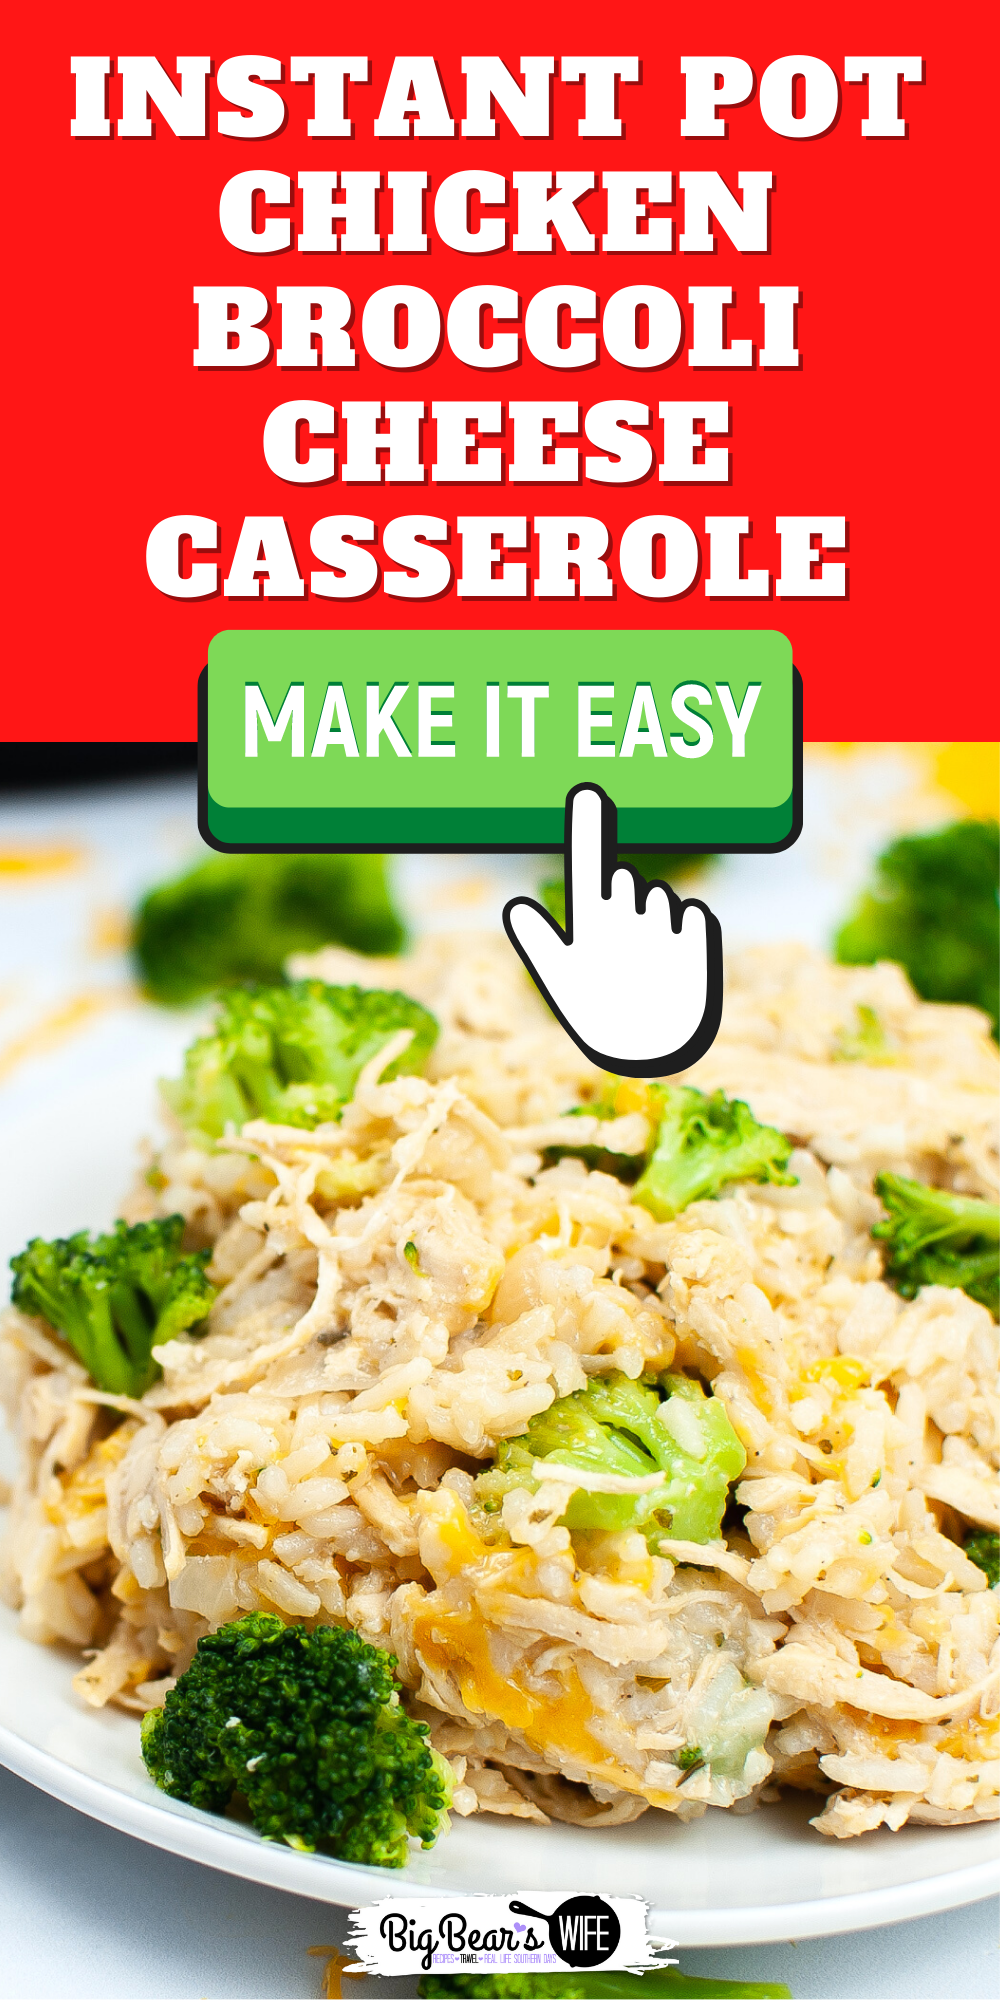 Make a homemade Instant Pot Chicken Broccoli Cheese Casserole in your instant pot for a one pot, family favorite meal that is easy on time and budget.  via @bigbearswife